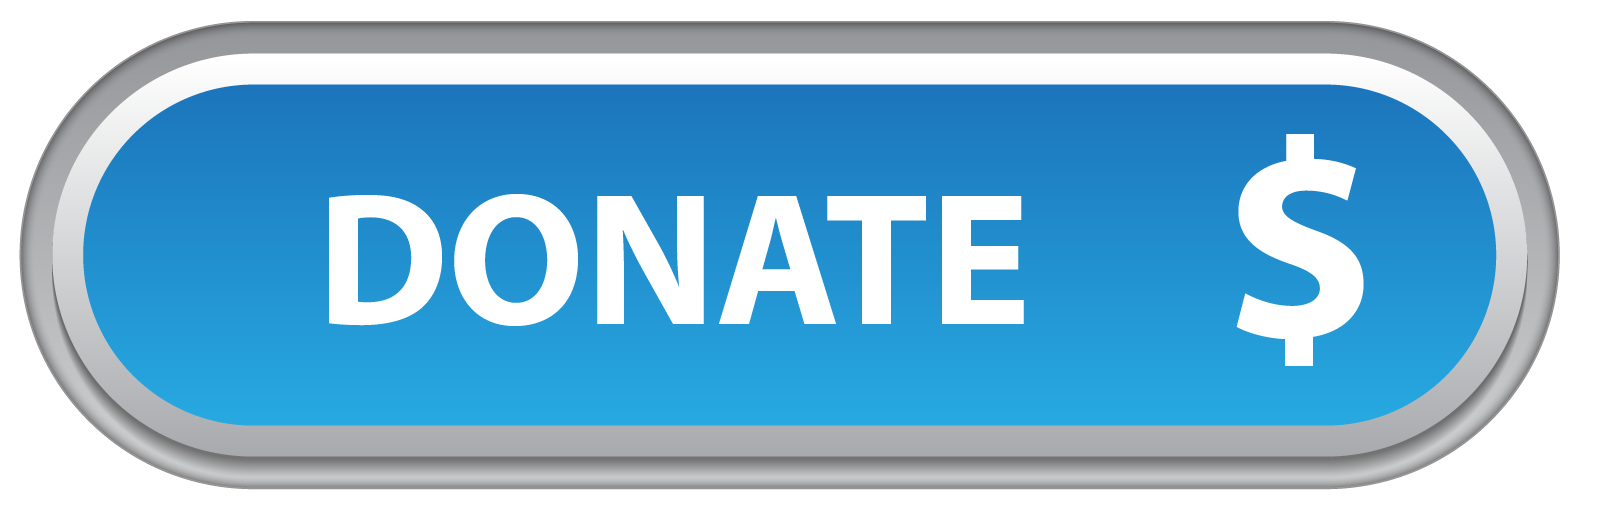 donate-button-3-03